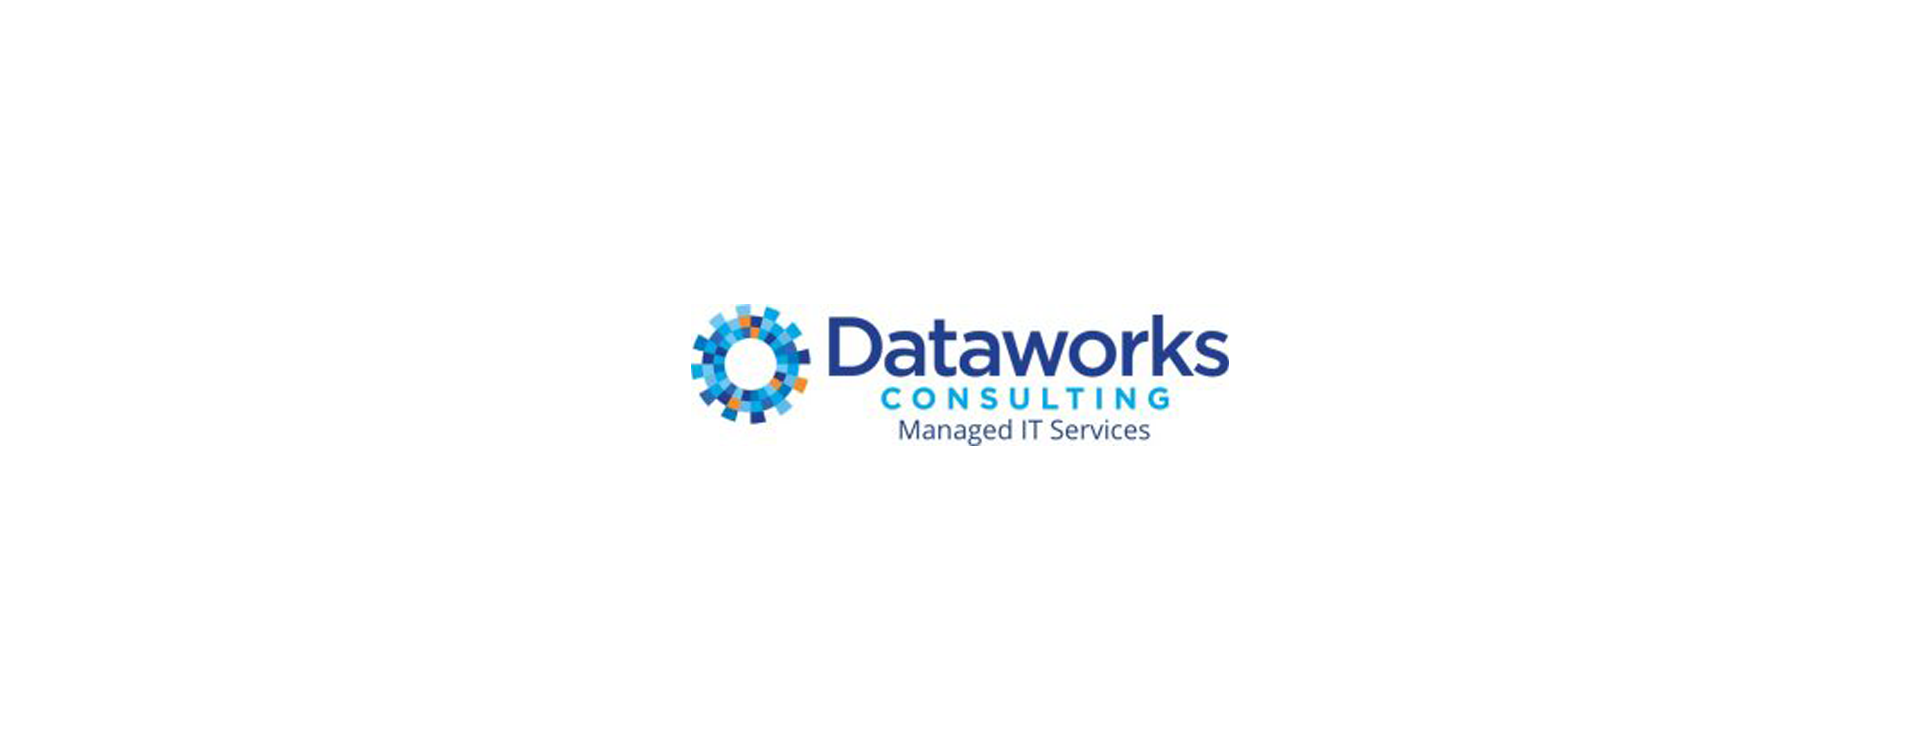 Dataworks Consulting